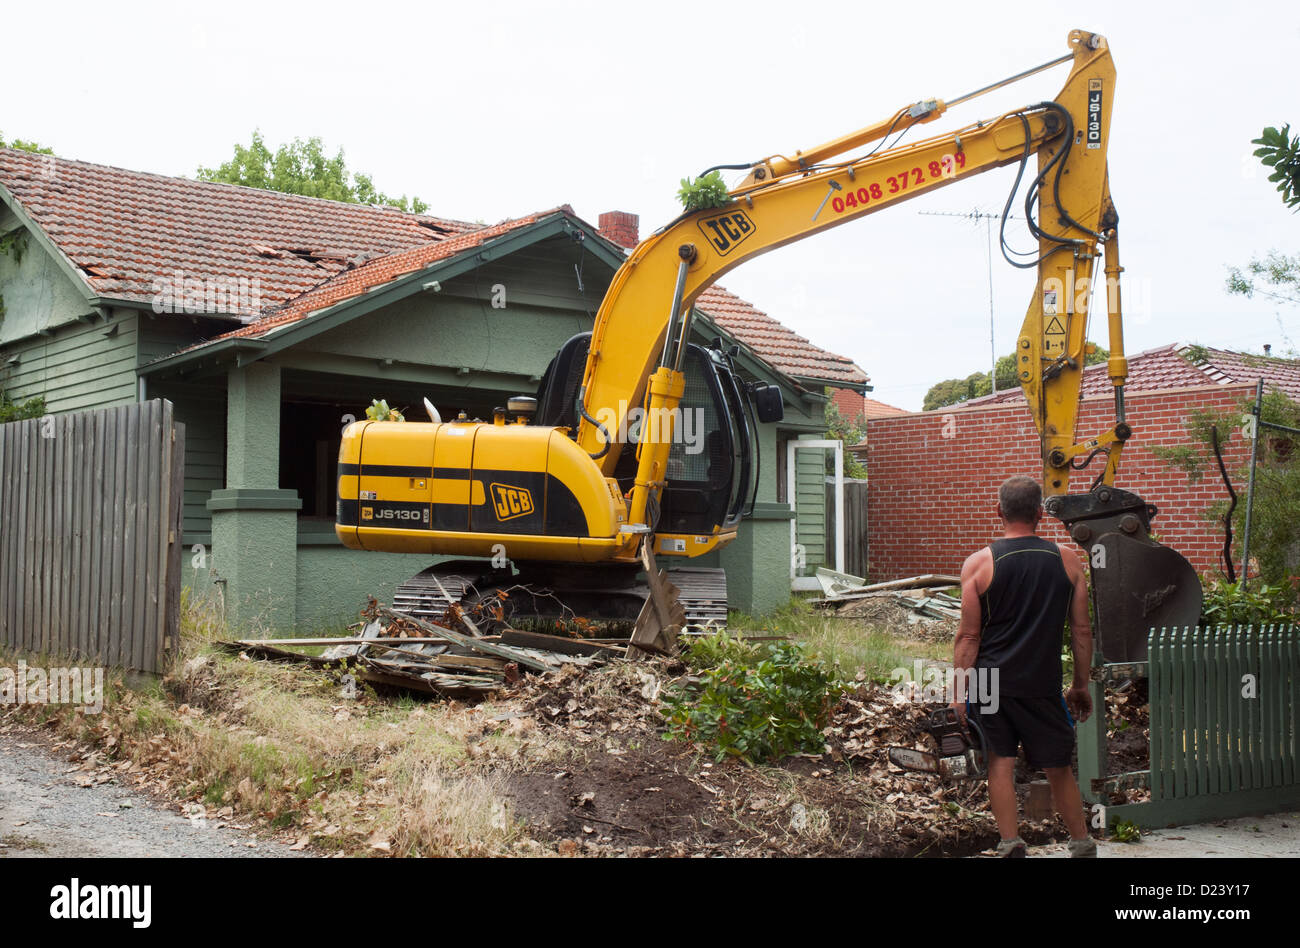 A Contractor Prepares To Begin Demolition Of 1920s Californian Bungalow Timber Home In Suburban Melbourne Australia